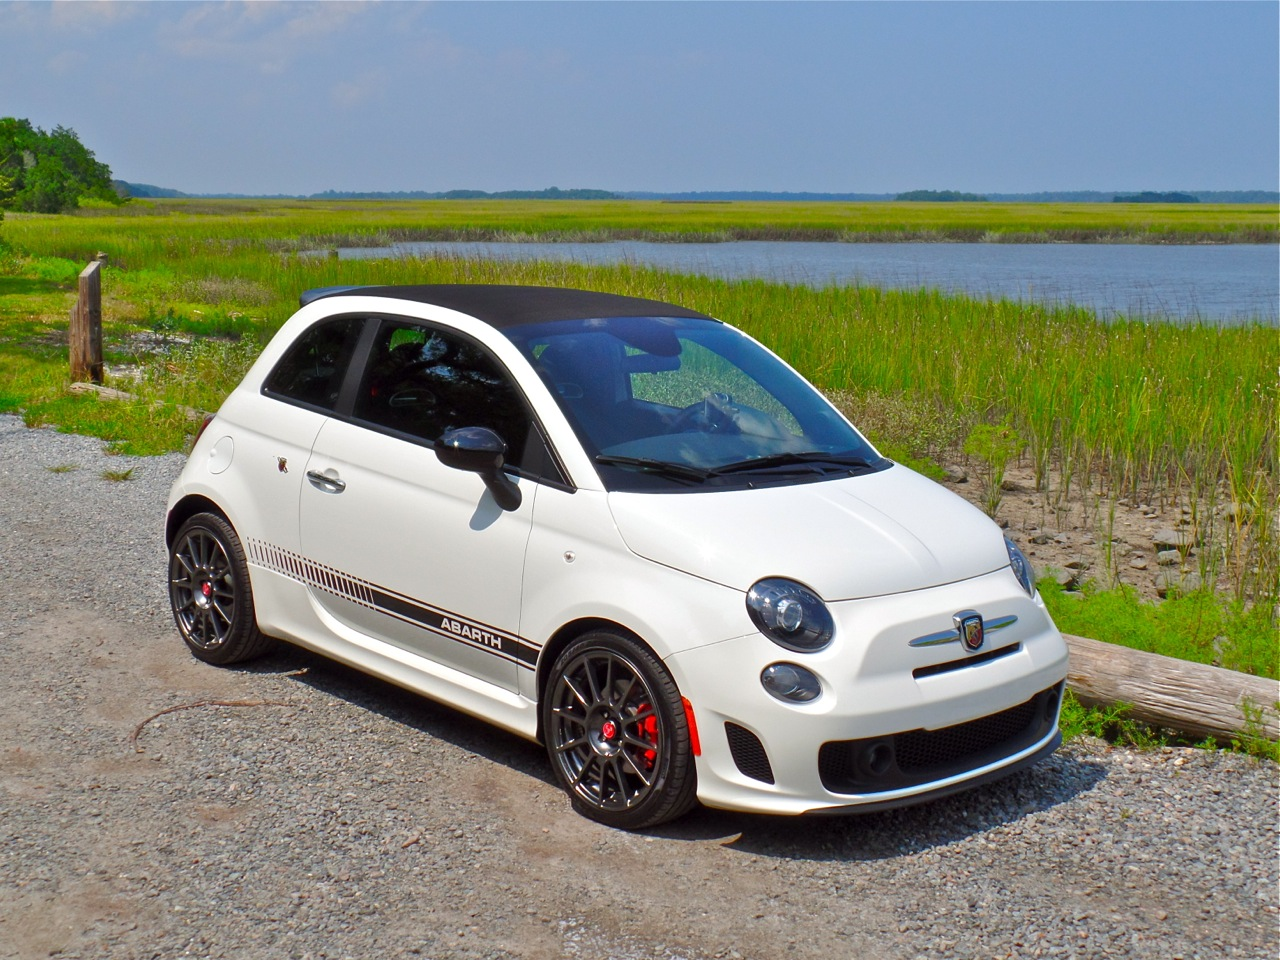 End Of The Summer Road Trip In A City Car The 2014 Fiat